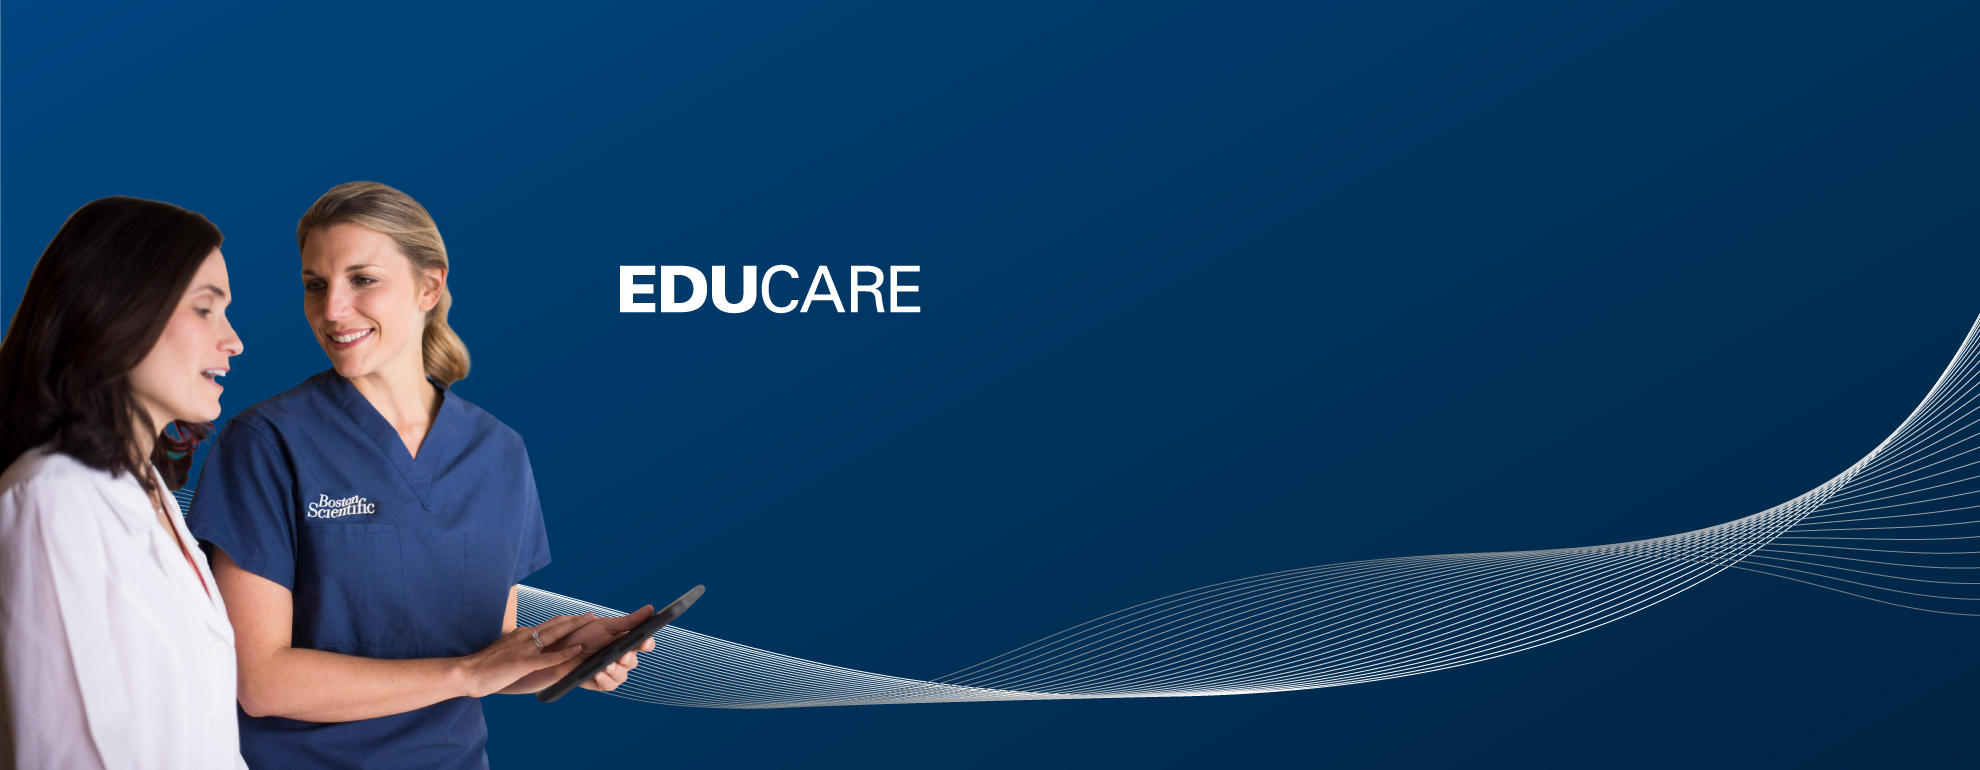 discover a valuable portfolio of personalised educational and training opportunities.